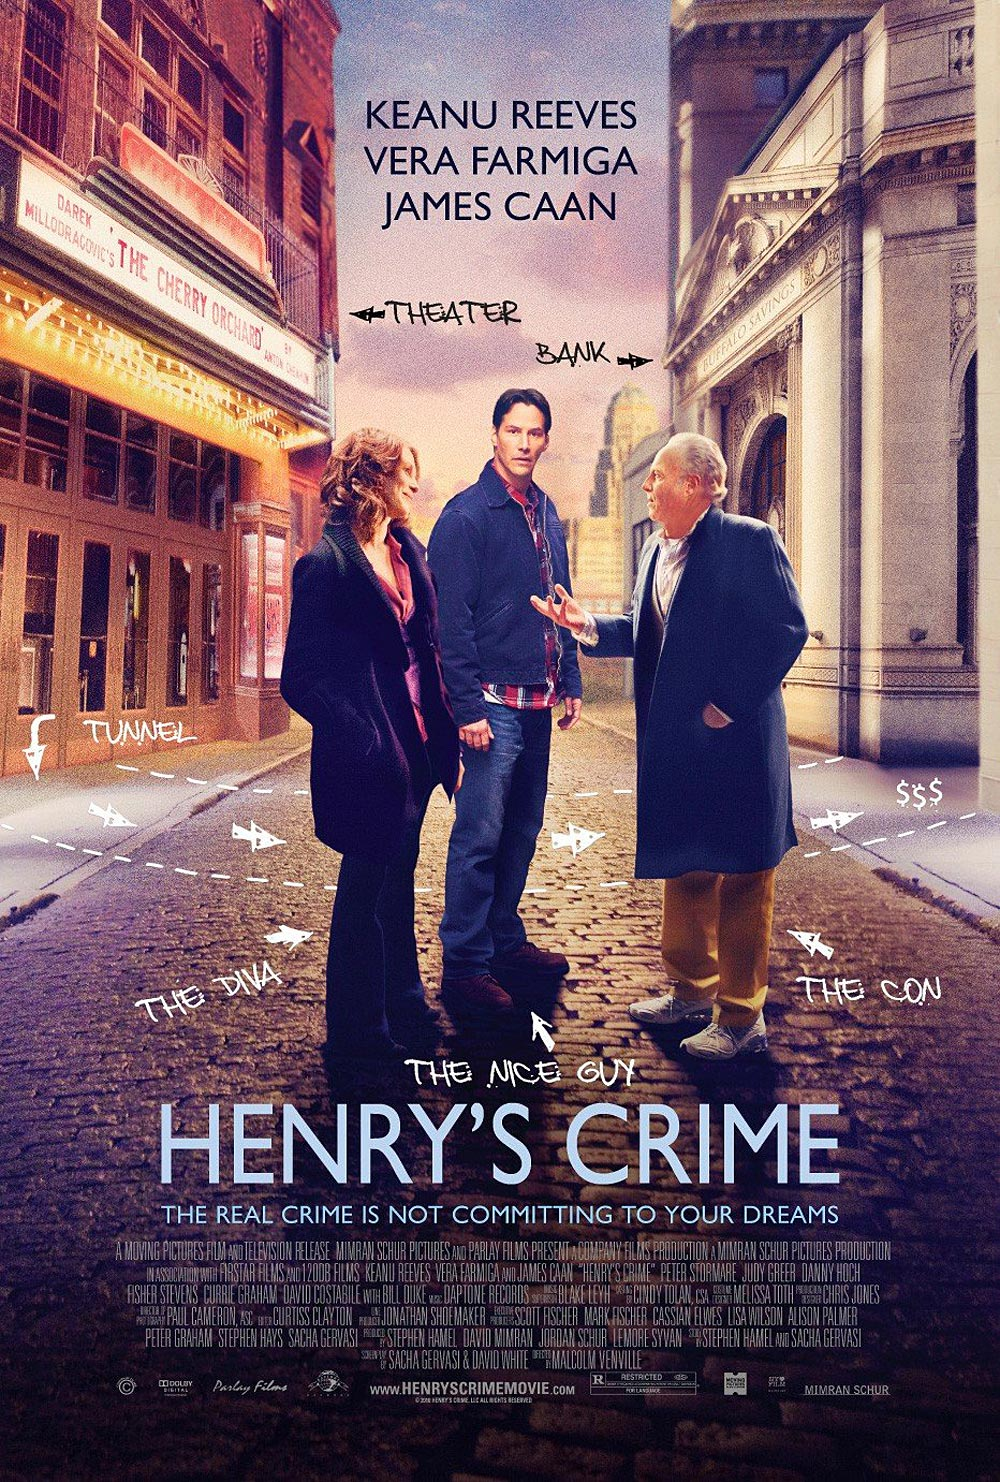 Movie Review: 'Henry's Crime' isn't as Much of a Crime as You'd Think